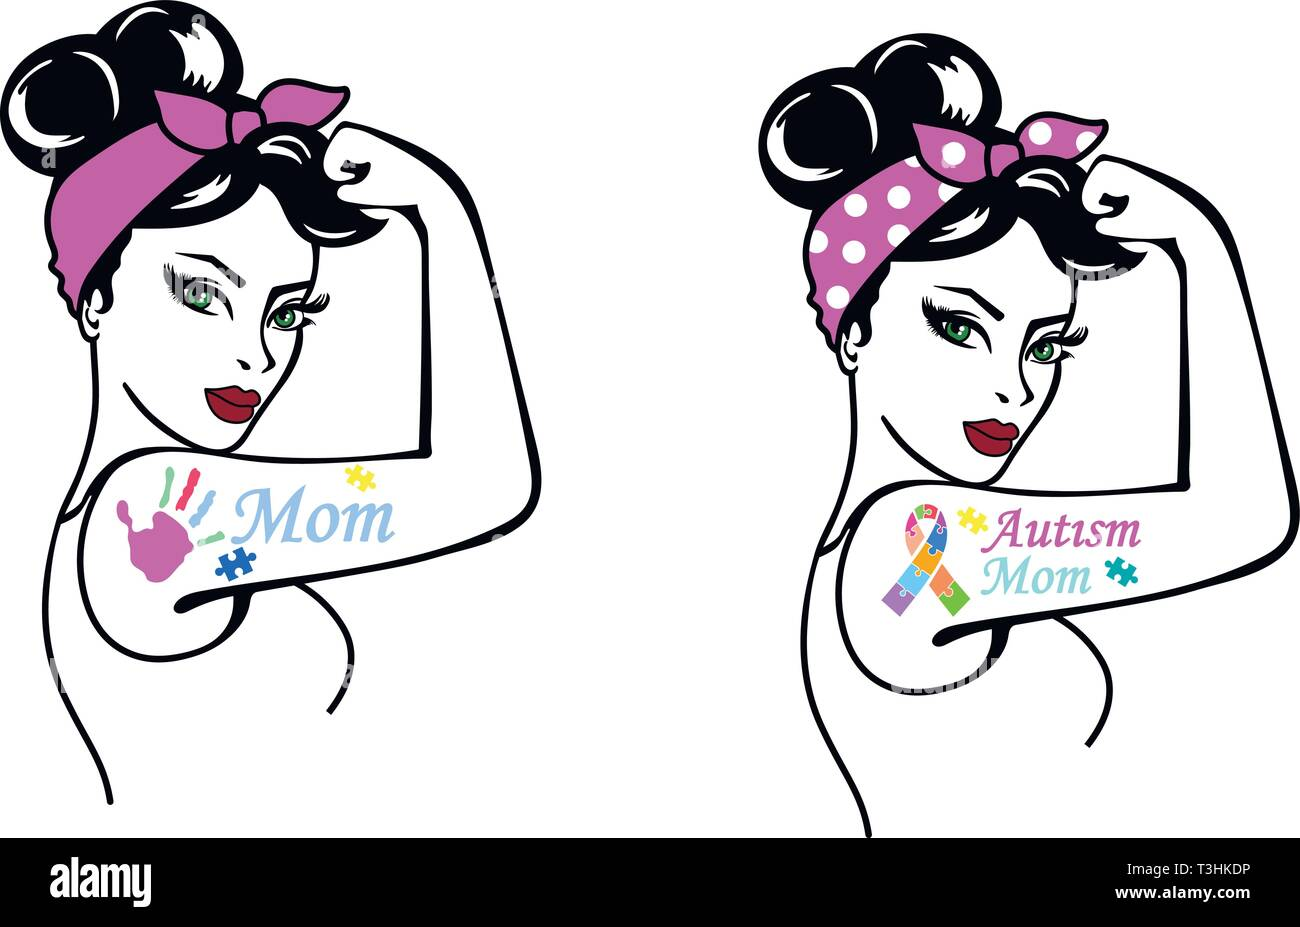 Rosie Girl Power. El autismo de MOM. Rosie la remachadora. Imagen De Stock